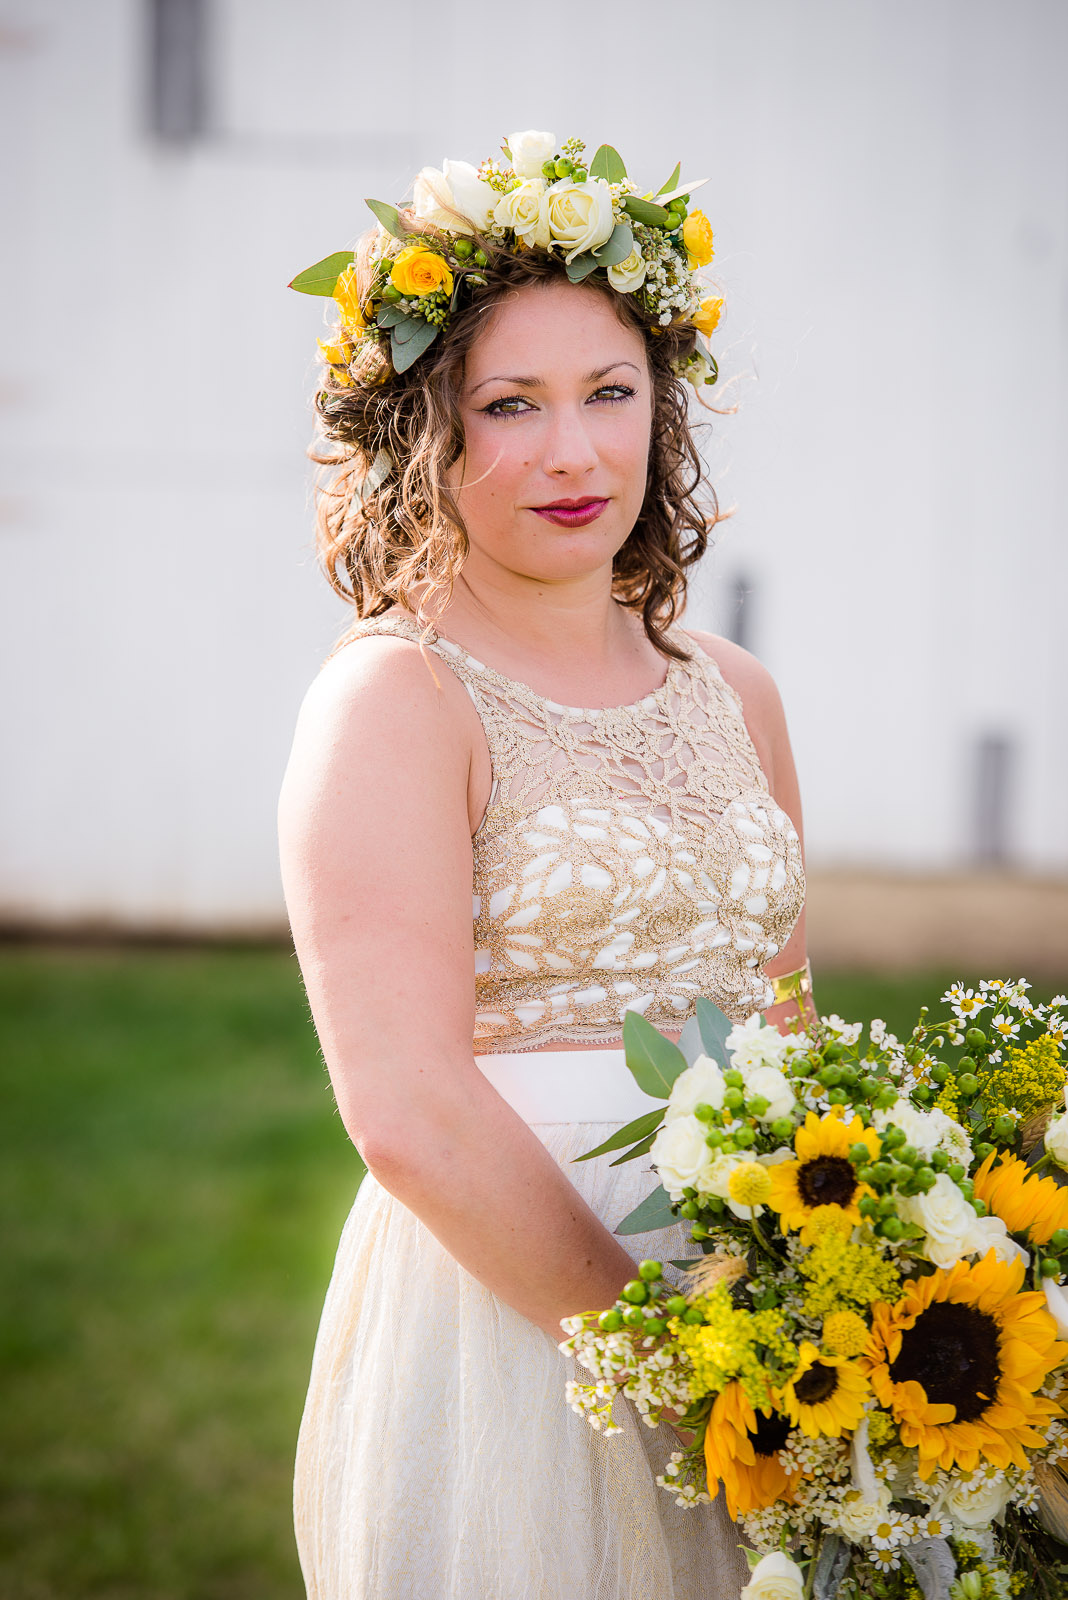 Eric_and_Christy_Photography_Blog_Wedding_Lauren_Jon-19